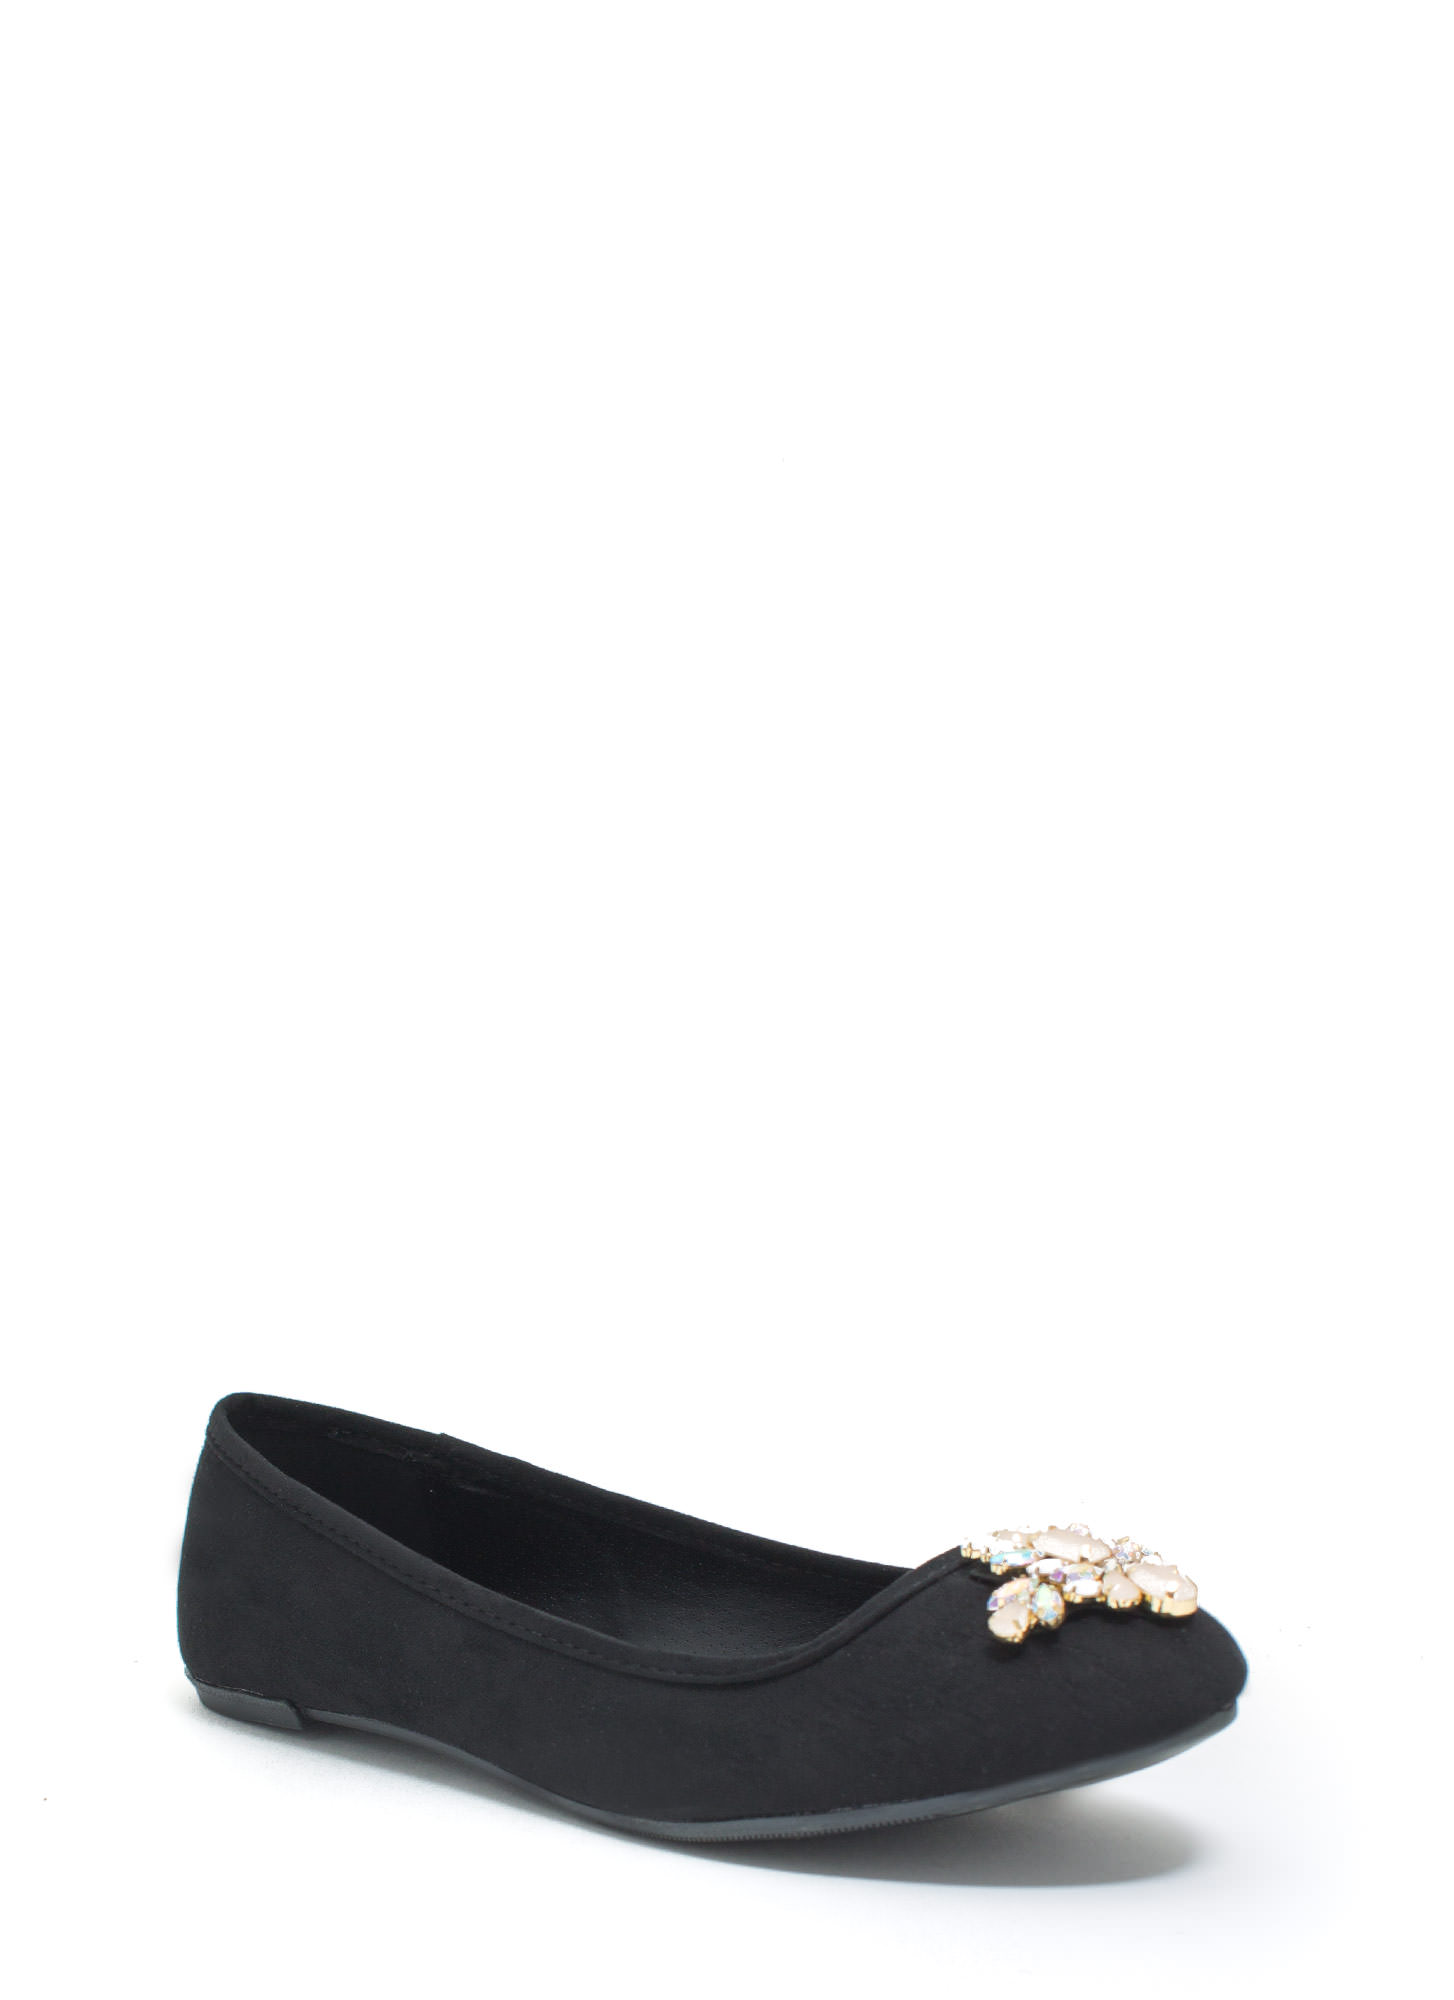 Life Of The Party Bejeweled Faux Suede Flats BLACK